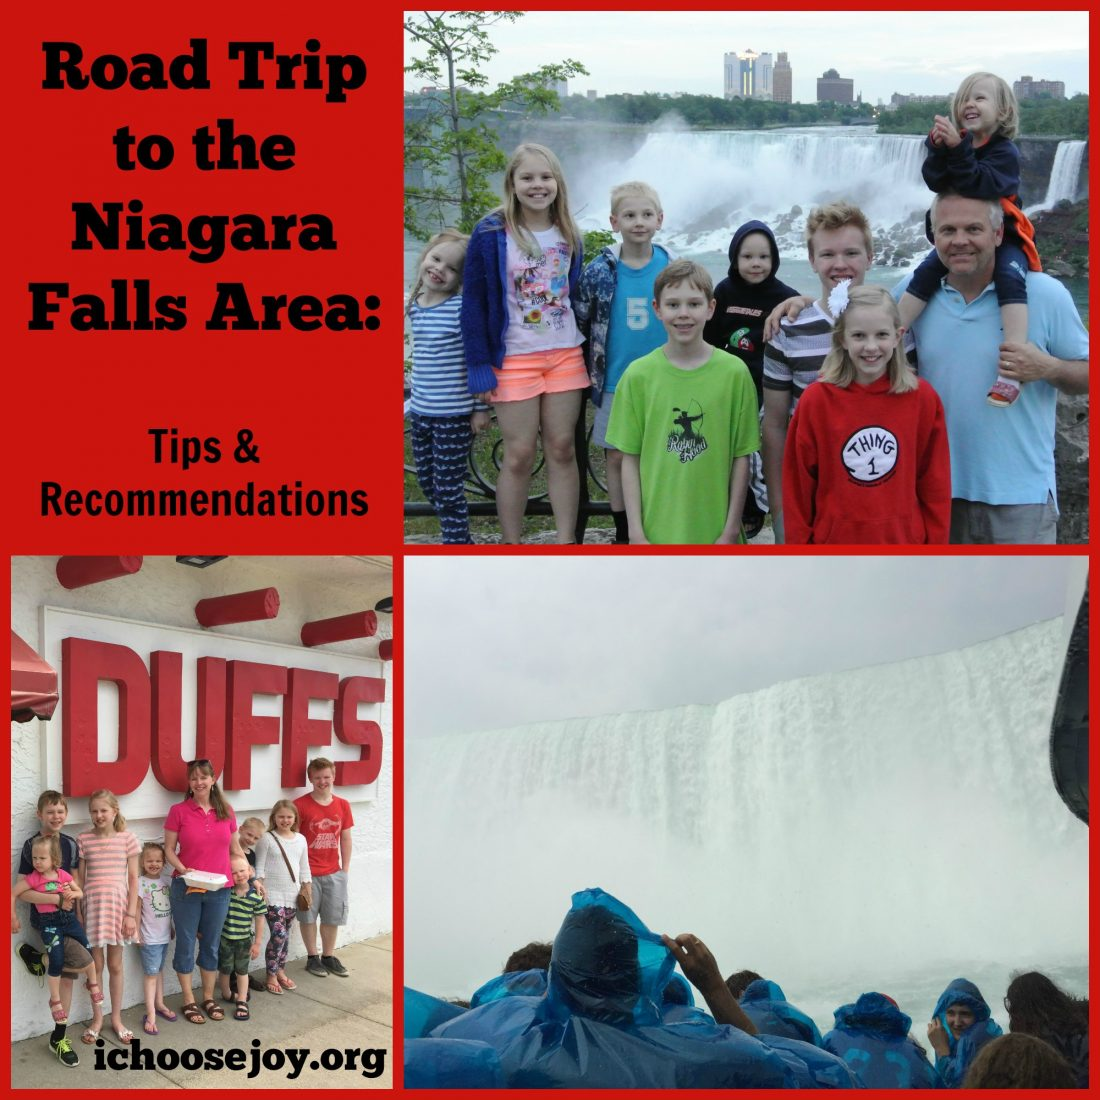 Road Trip to Niagara Falls area: Tips and Recommendations